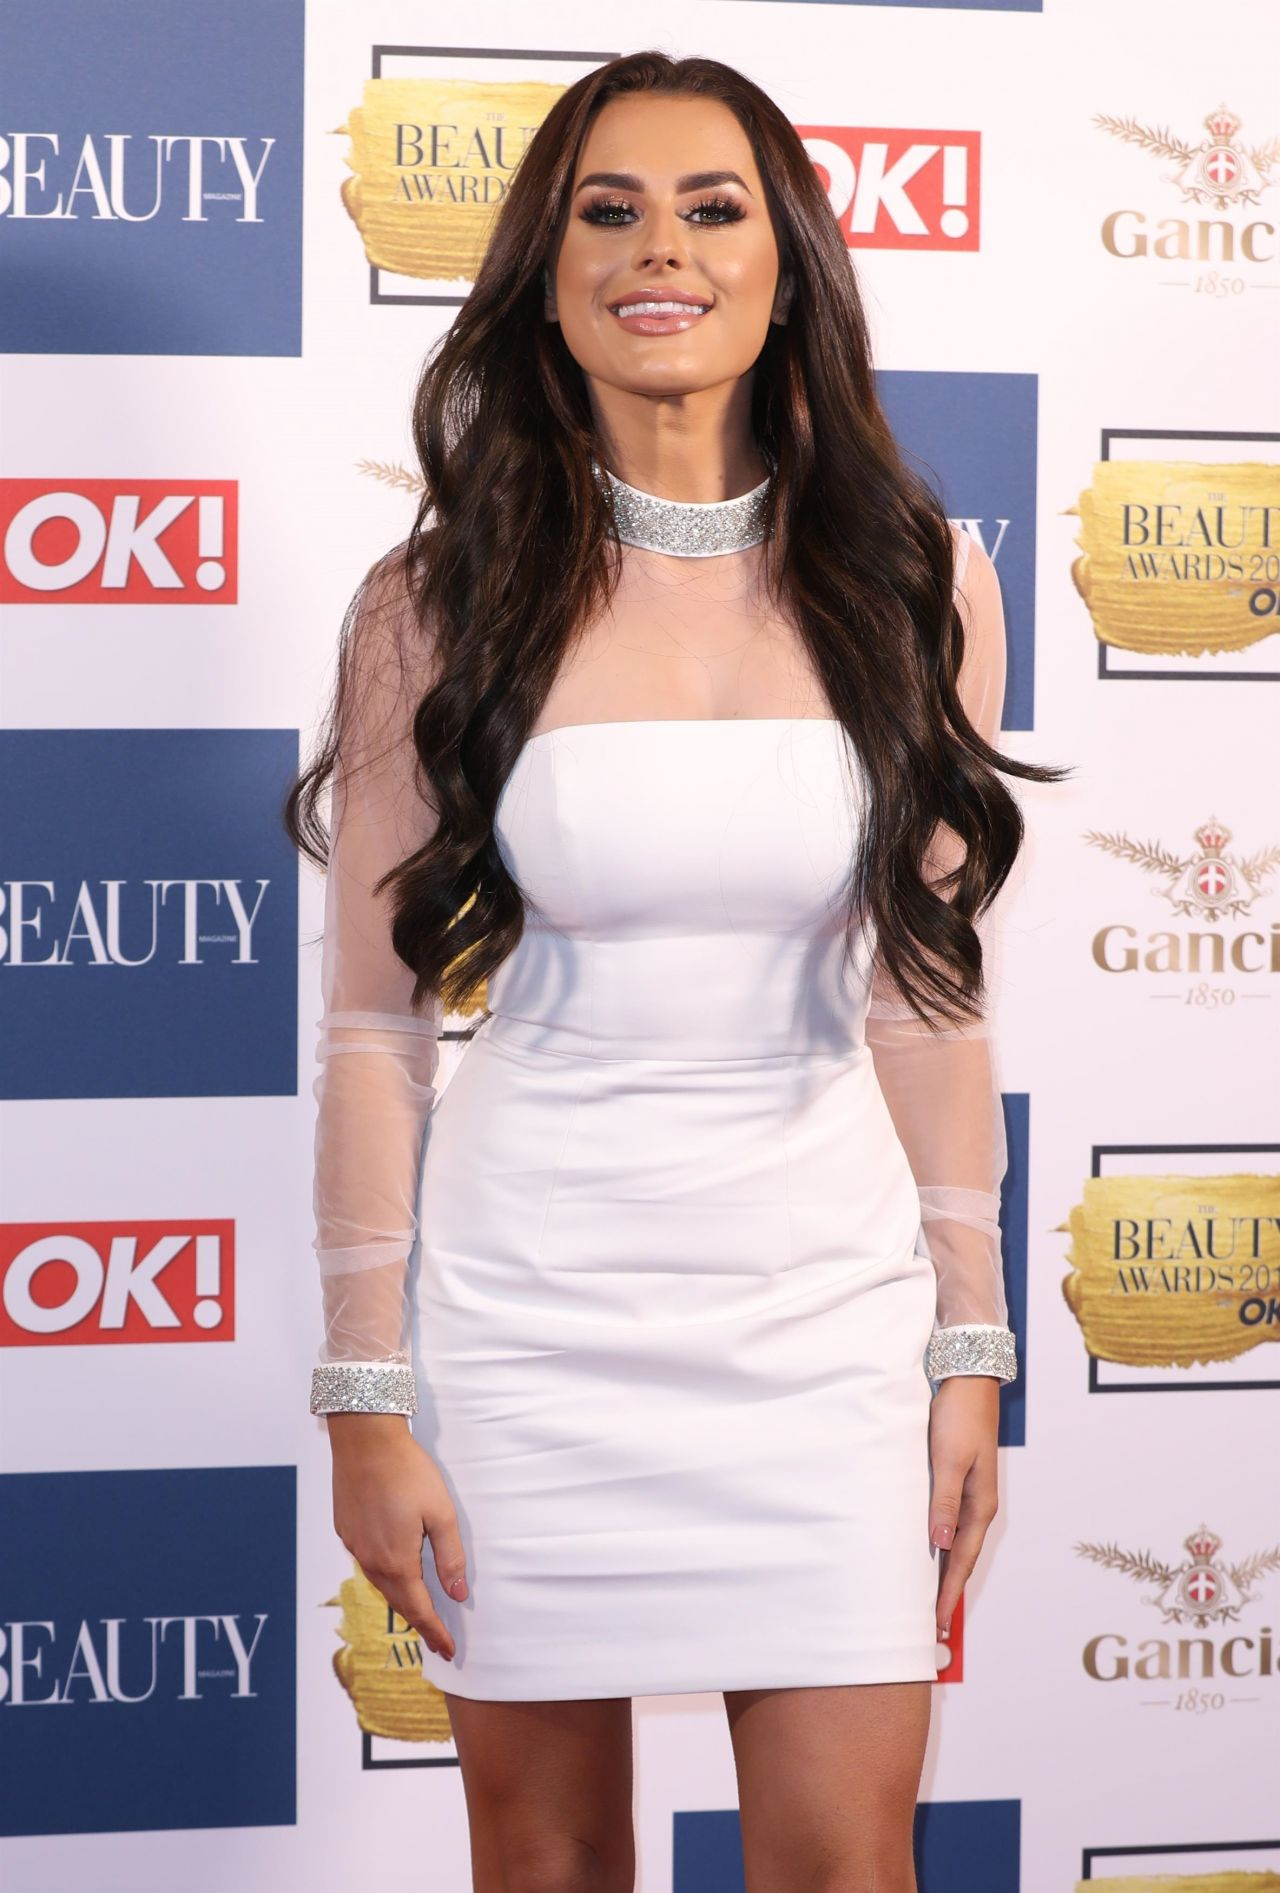 Amber Davies Beauty Awards With Ok In London